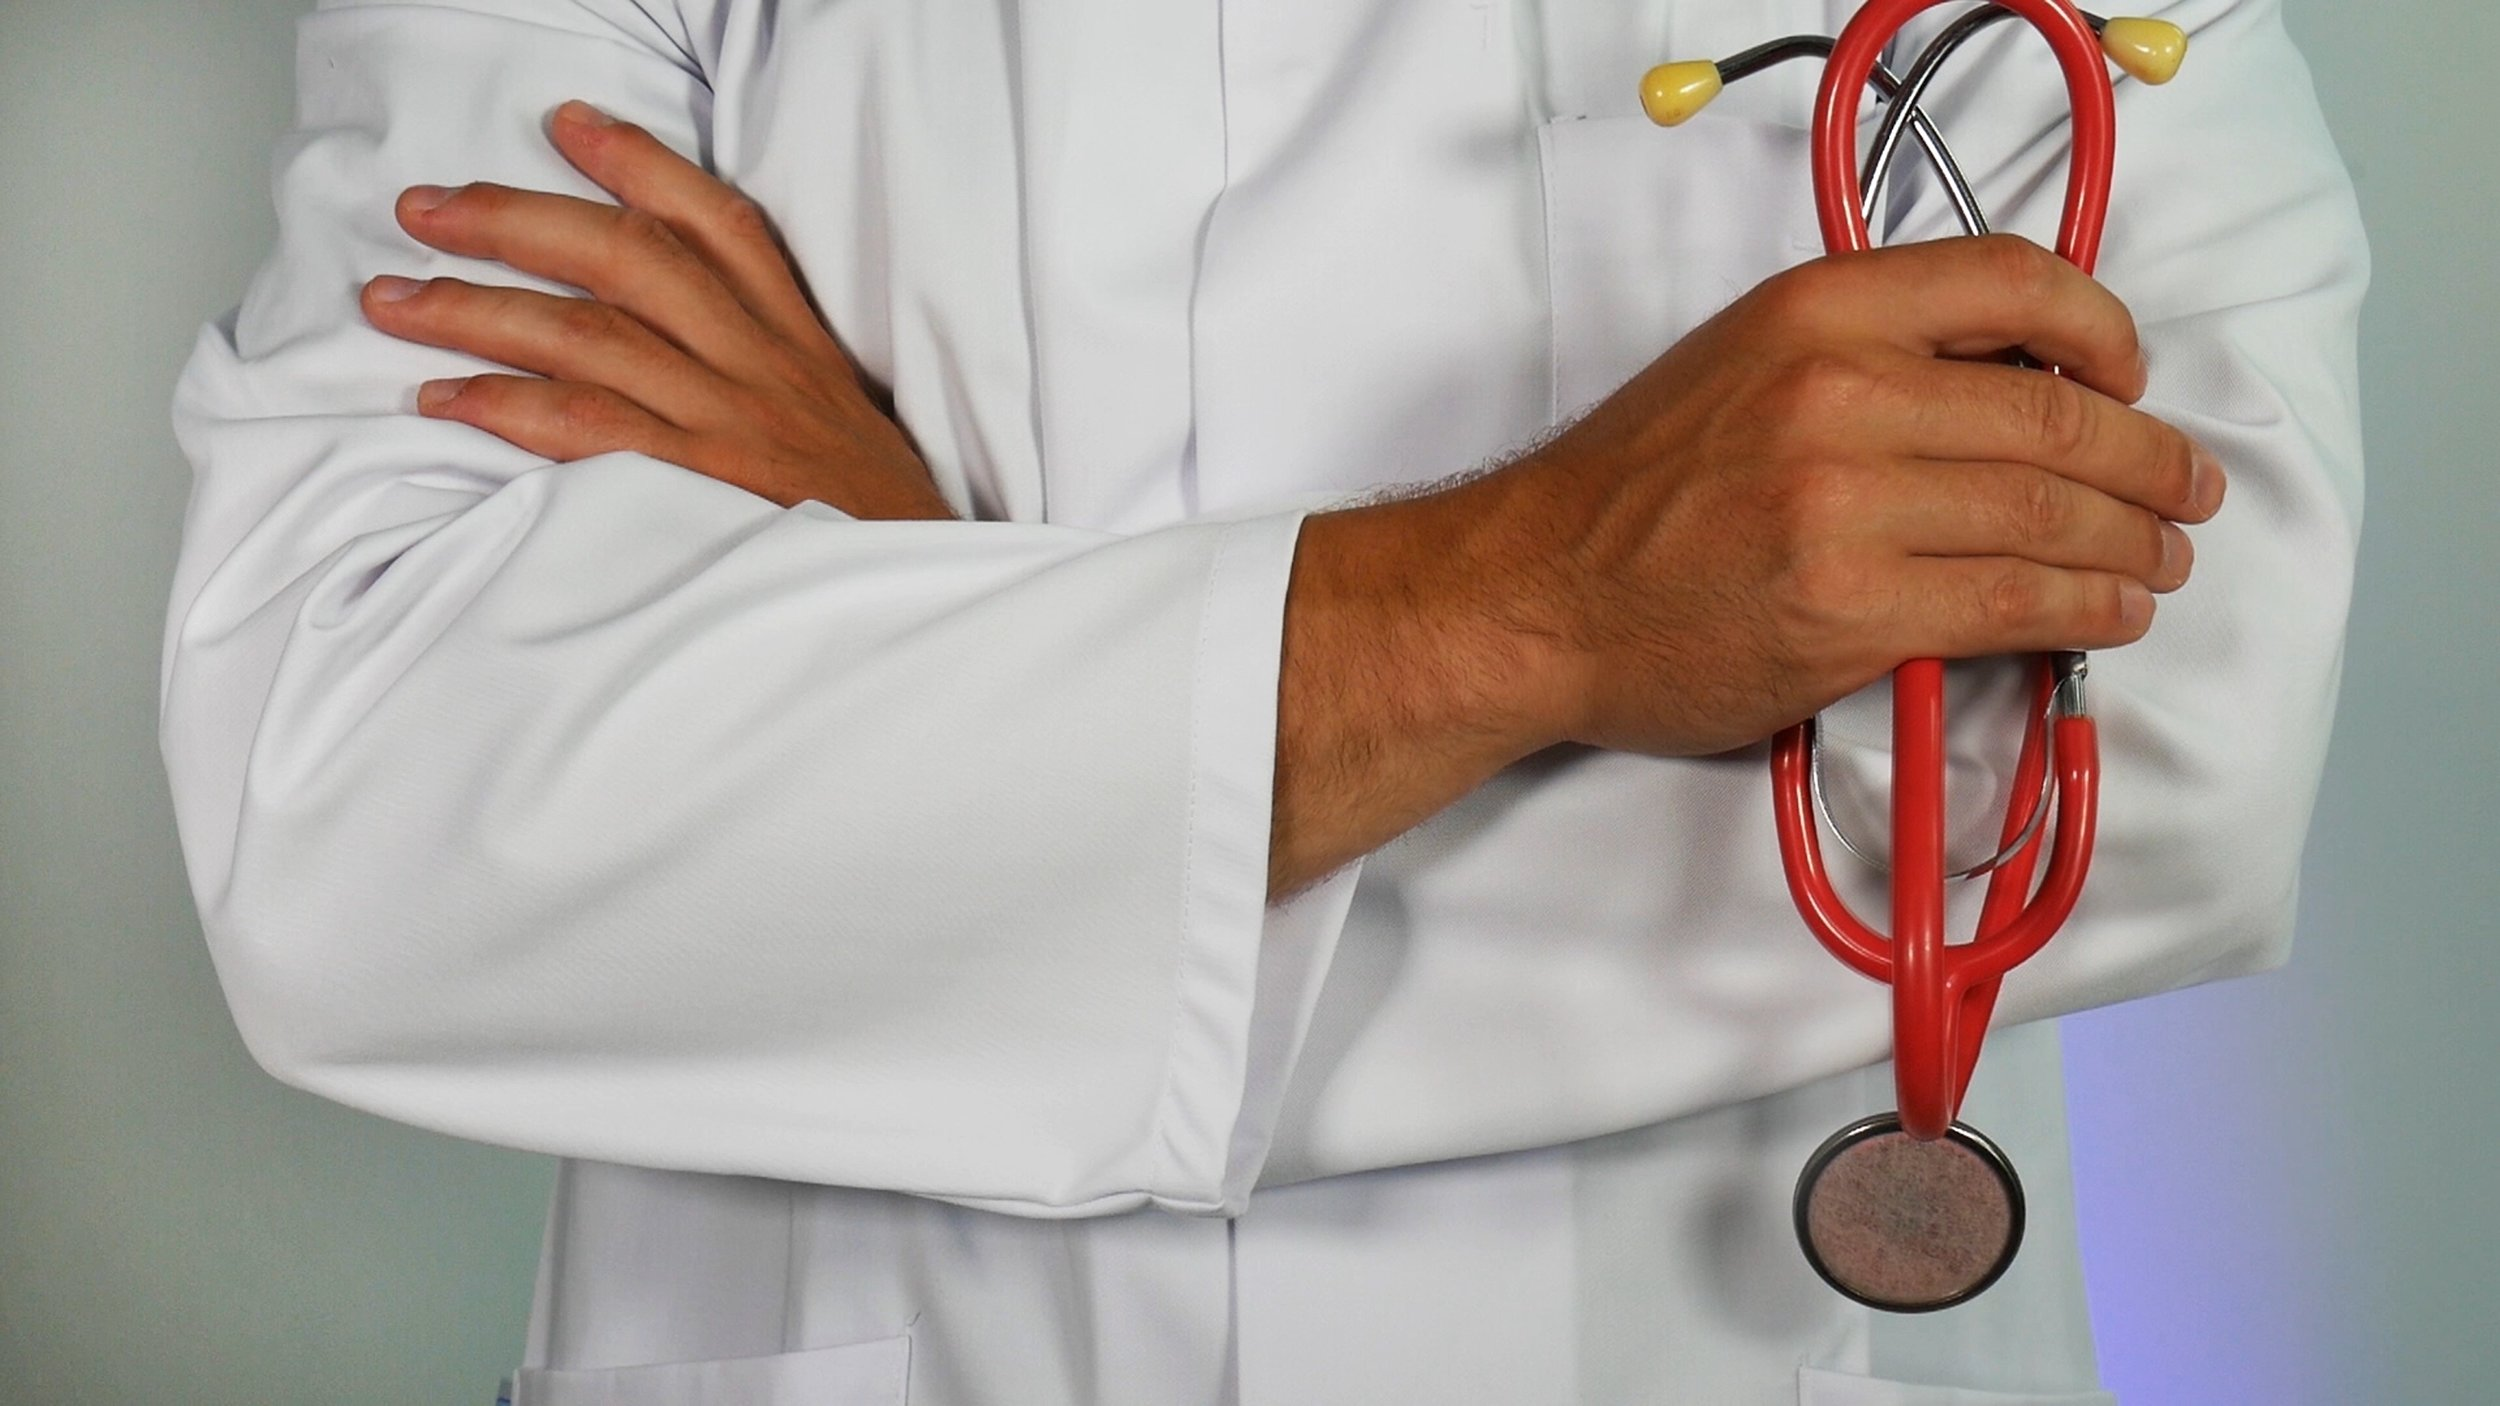 Only 29 percent of U.S. medical schools offer med students the recommended 25 hours of nutrition education, according to a    2015 report in the Journal of Biomedical Education   .